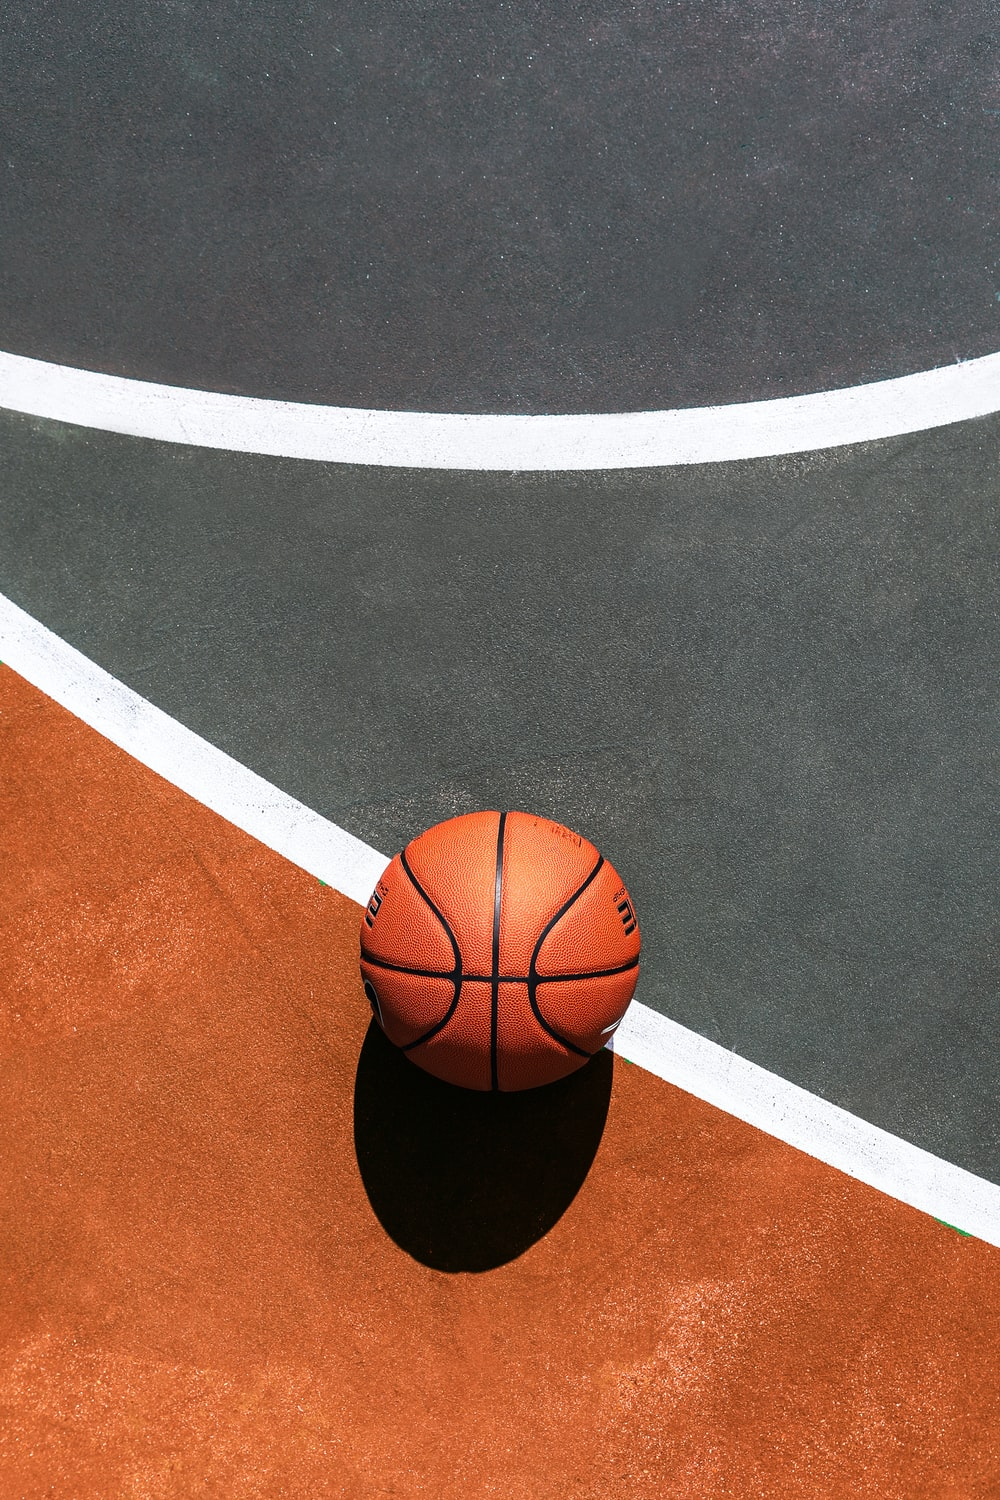 Sports Wallpapers Free Hd Download 500 Hq Unsplash